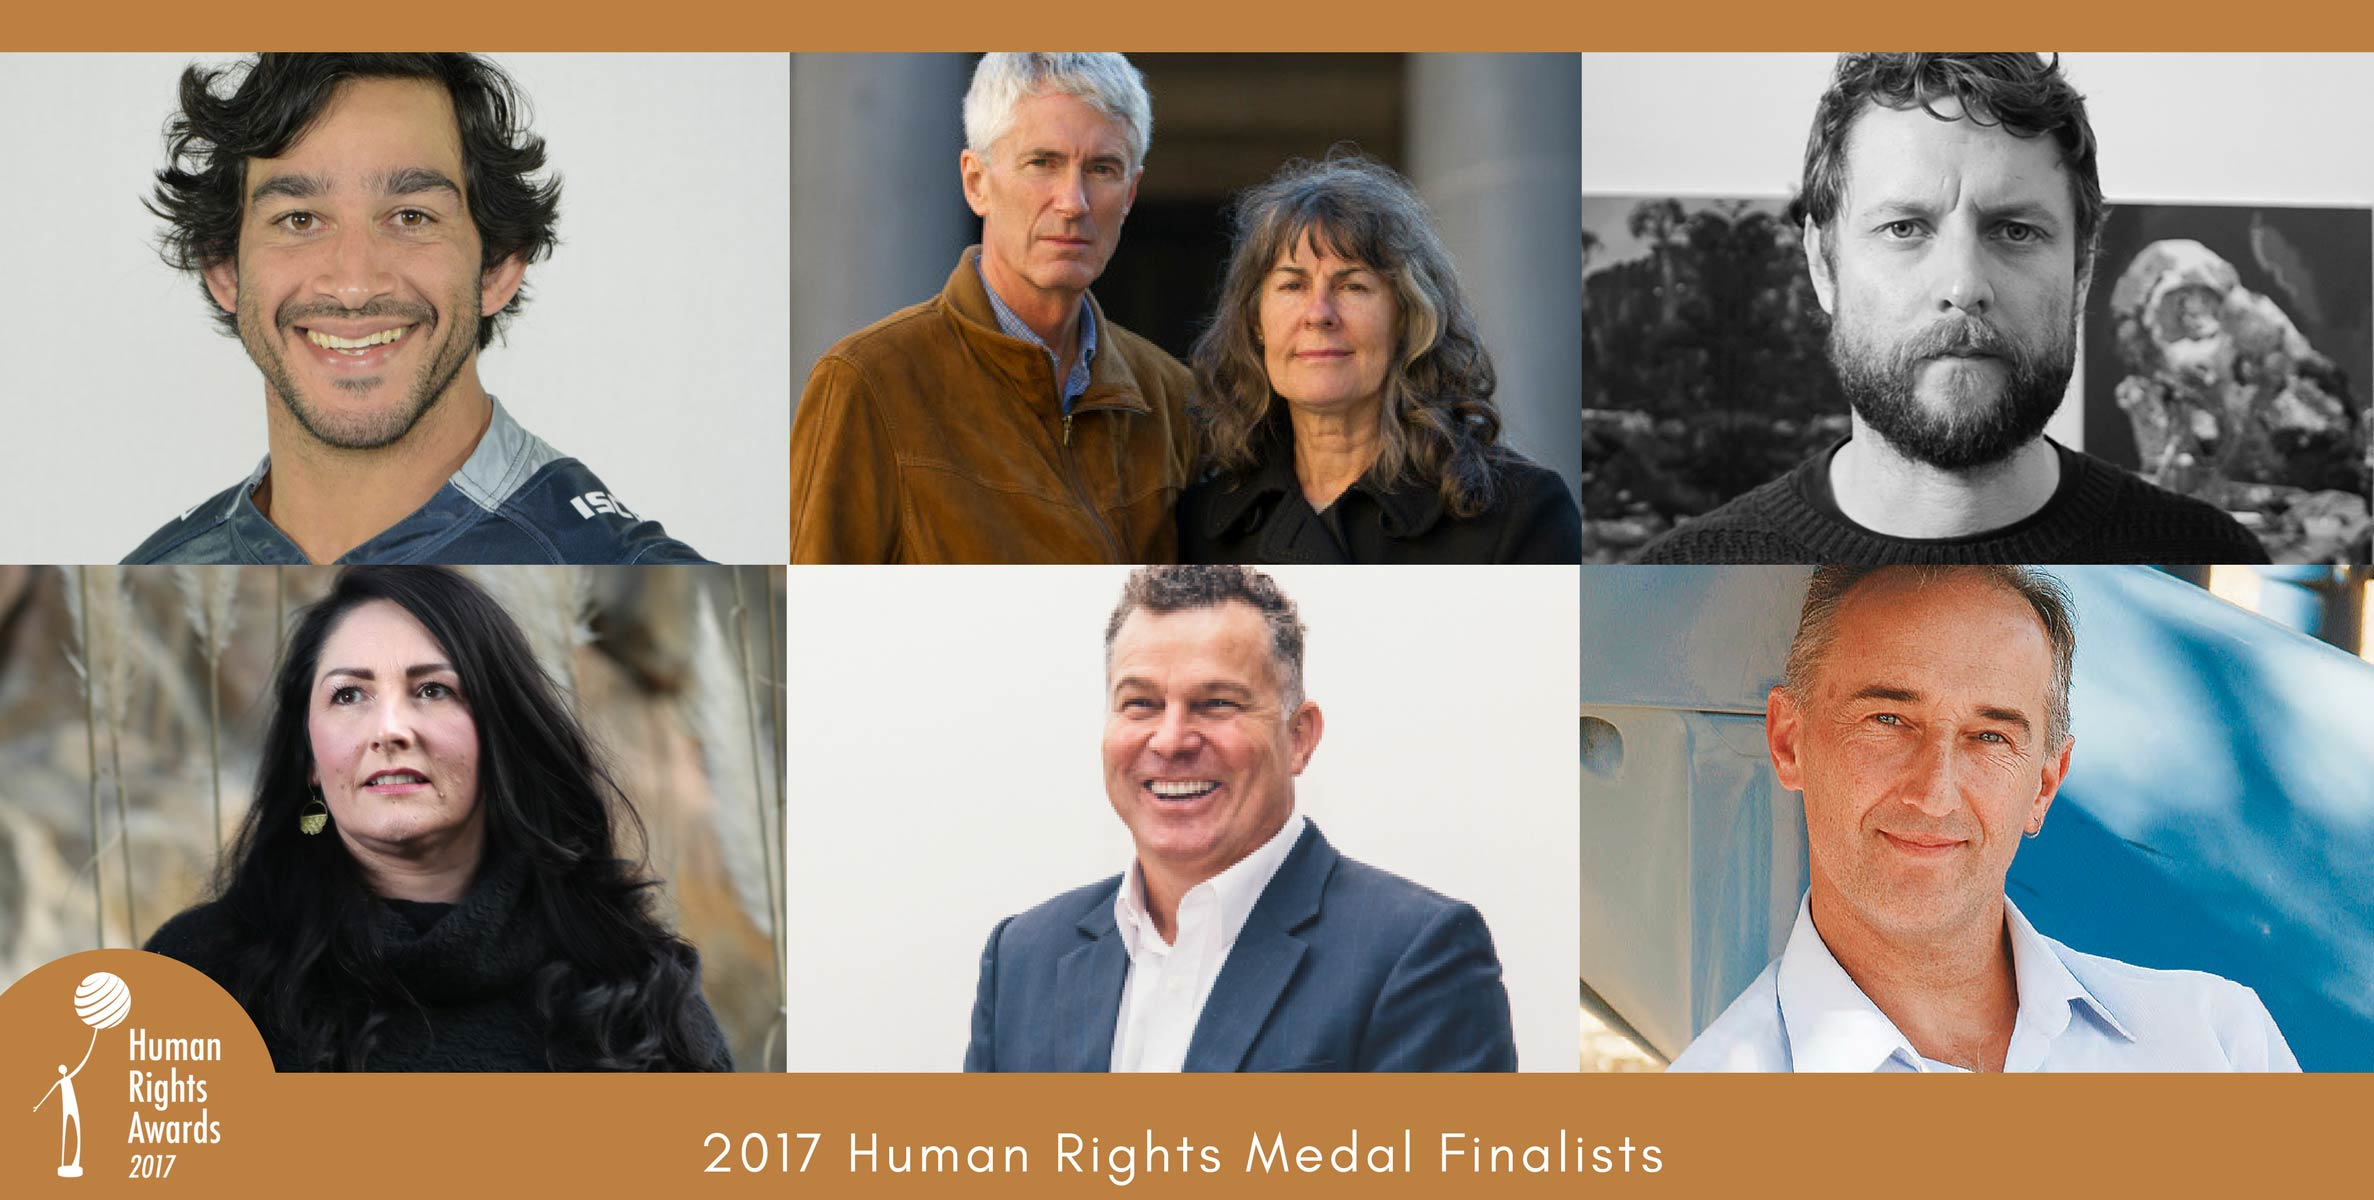 Human Rights Awards 2017 Medal Finalists